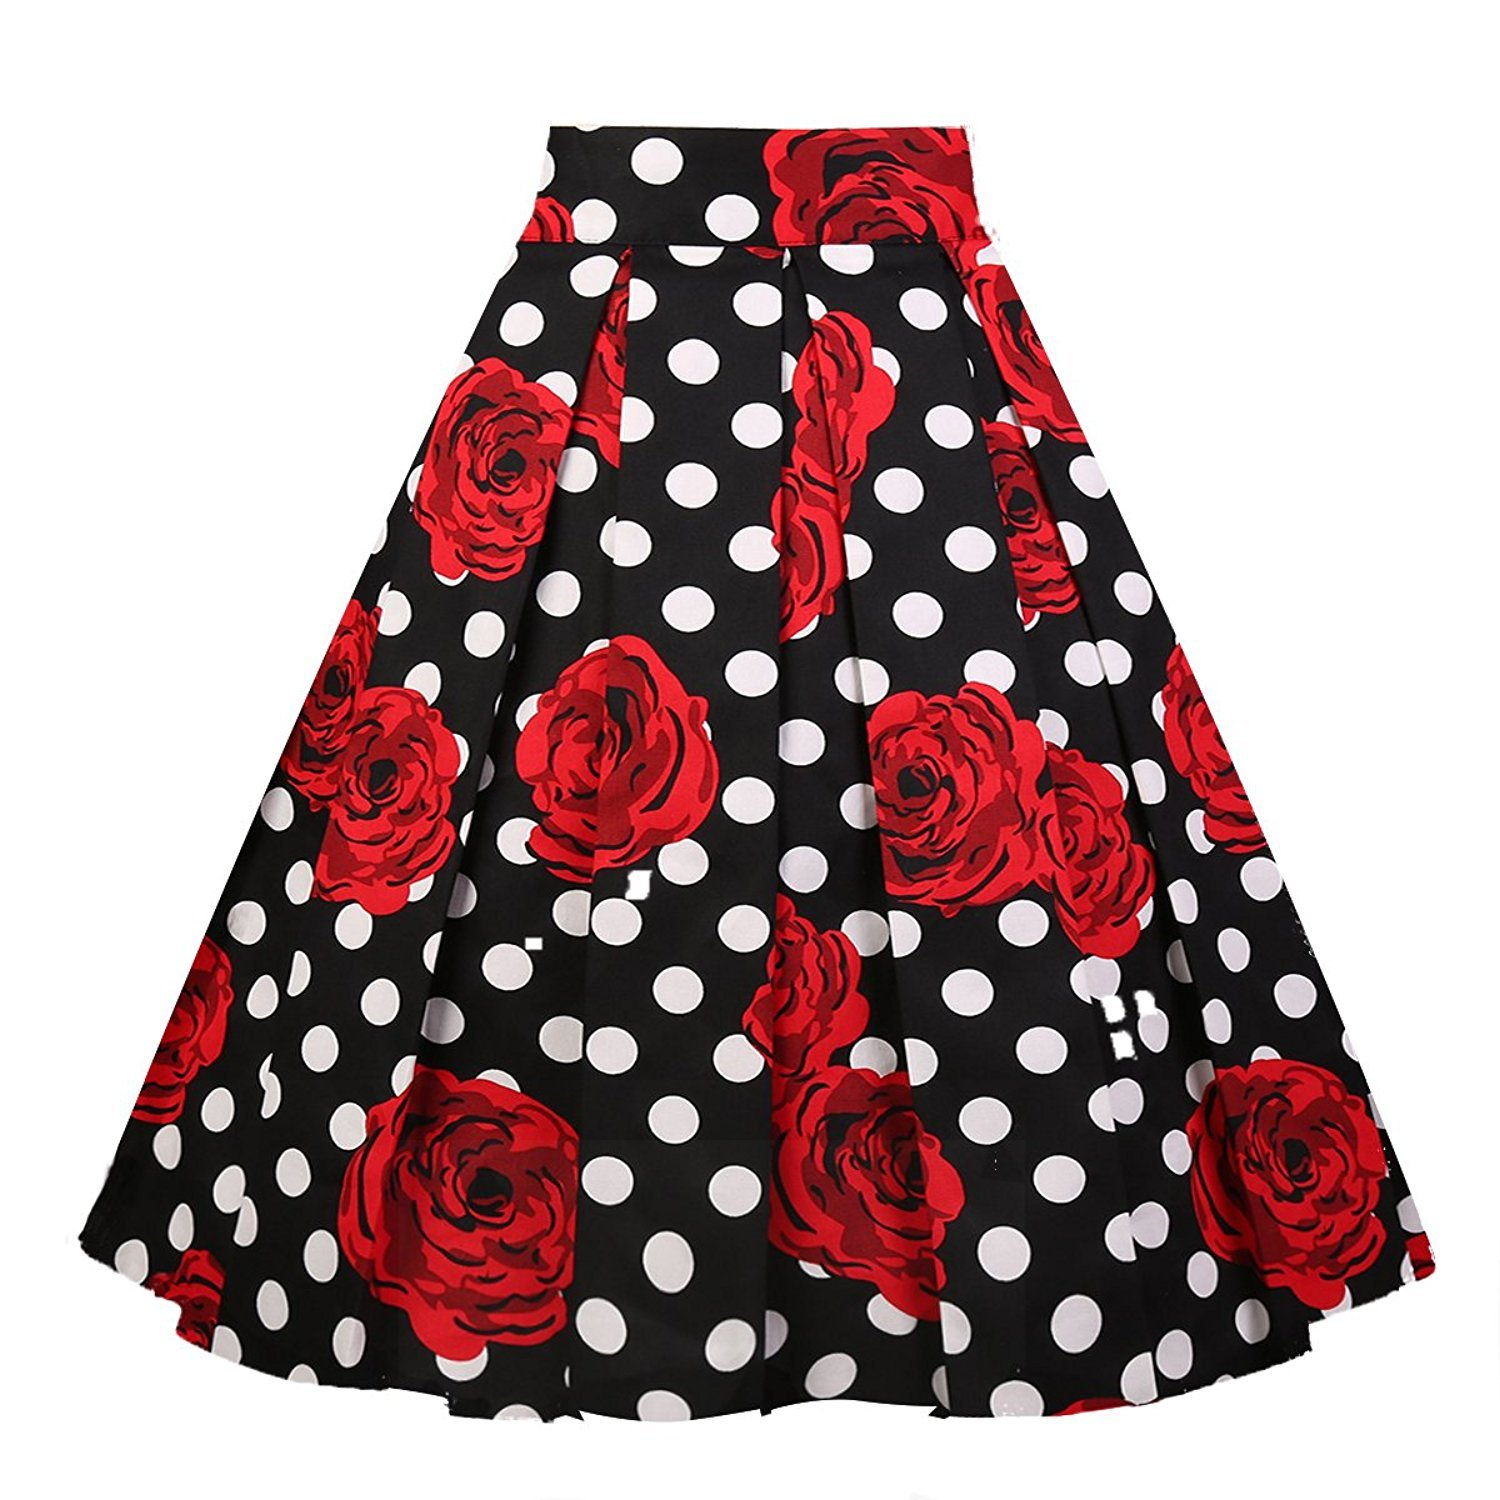 Dresstore Women's Vintage Pleated Skirt Floral A-line Printed Midi Skirts with Pockets White dots-Rose-L